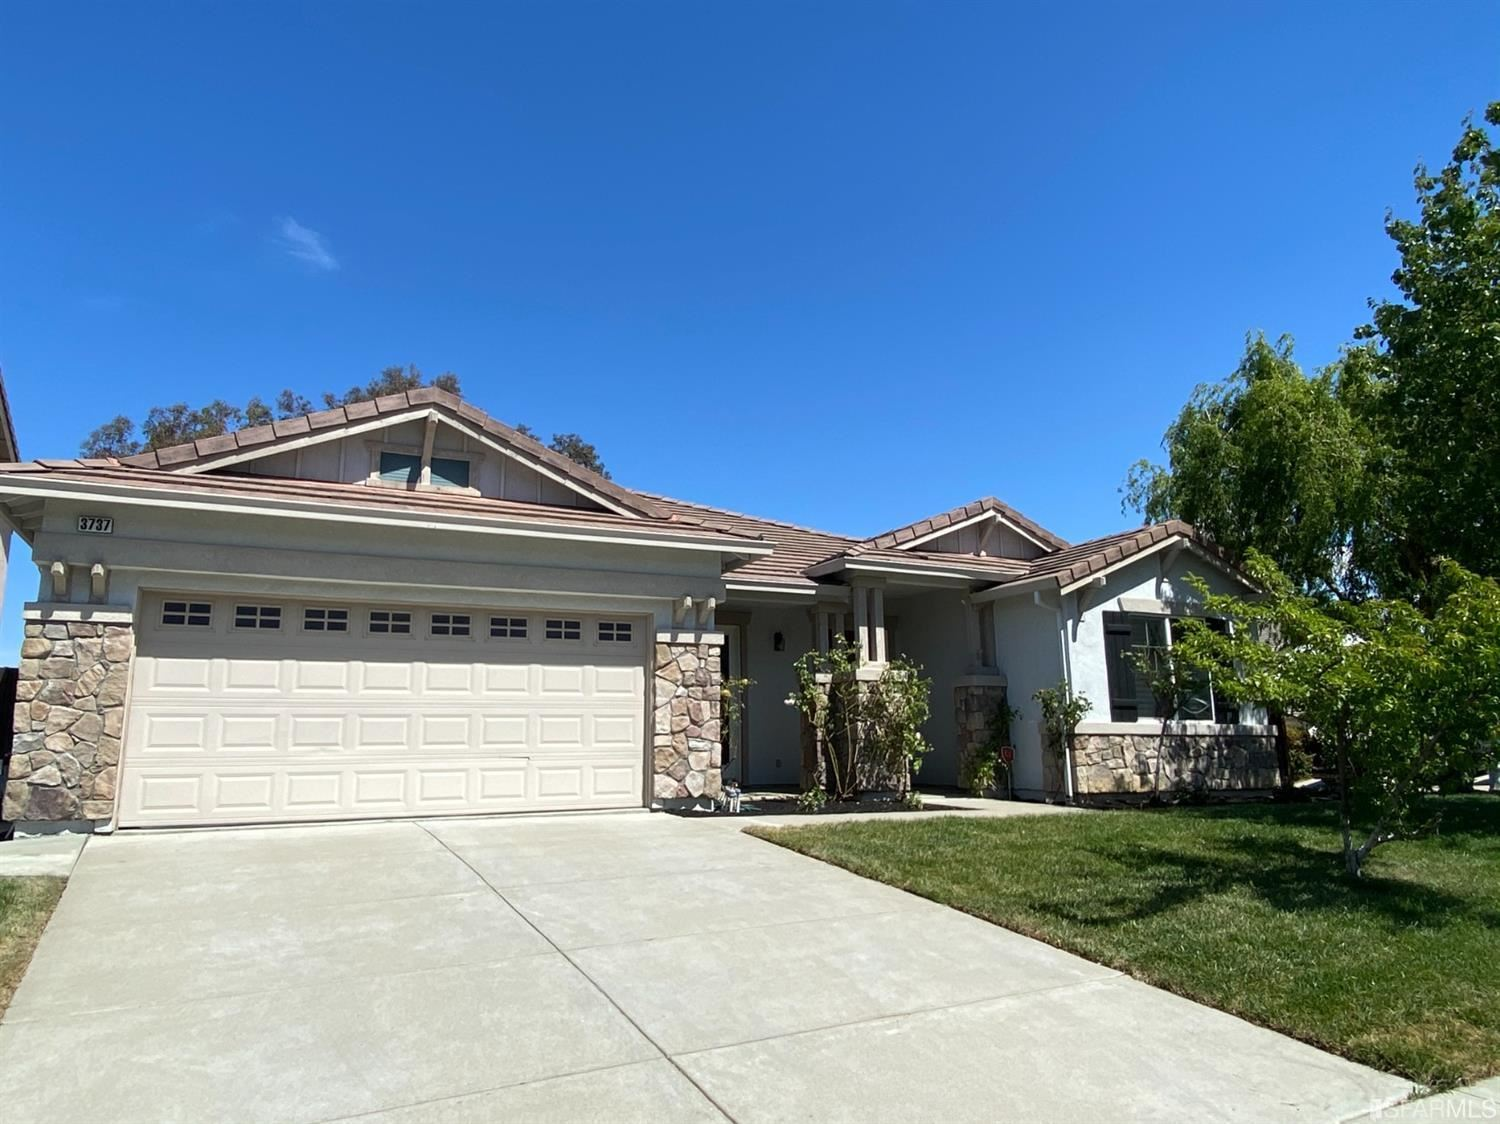 3737 Pintail Drive, Antioch, CA 94509 - #: 421561594